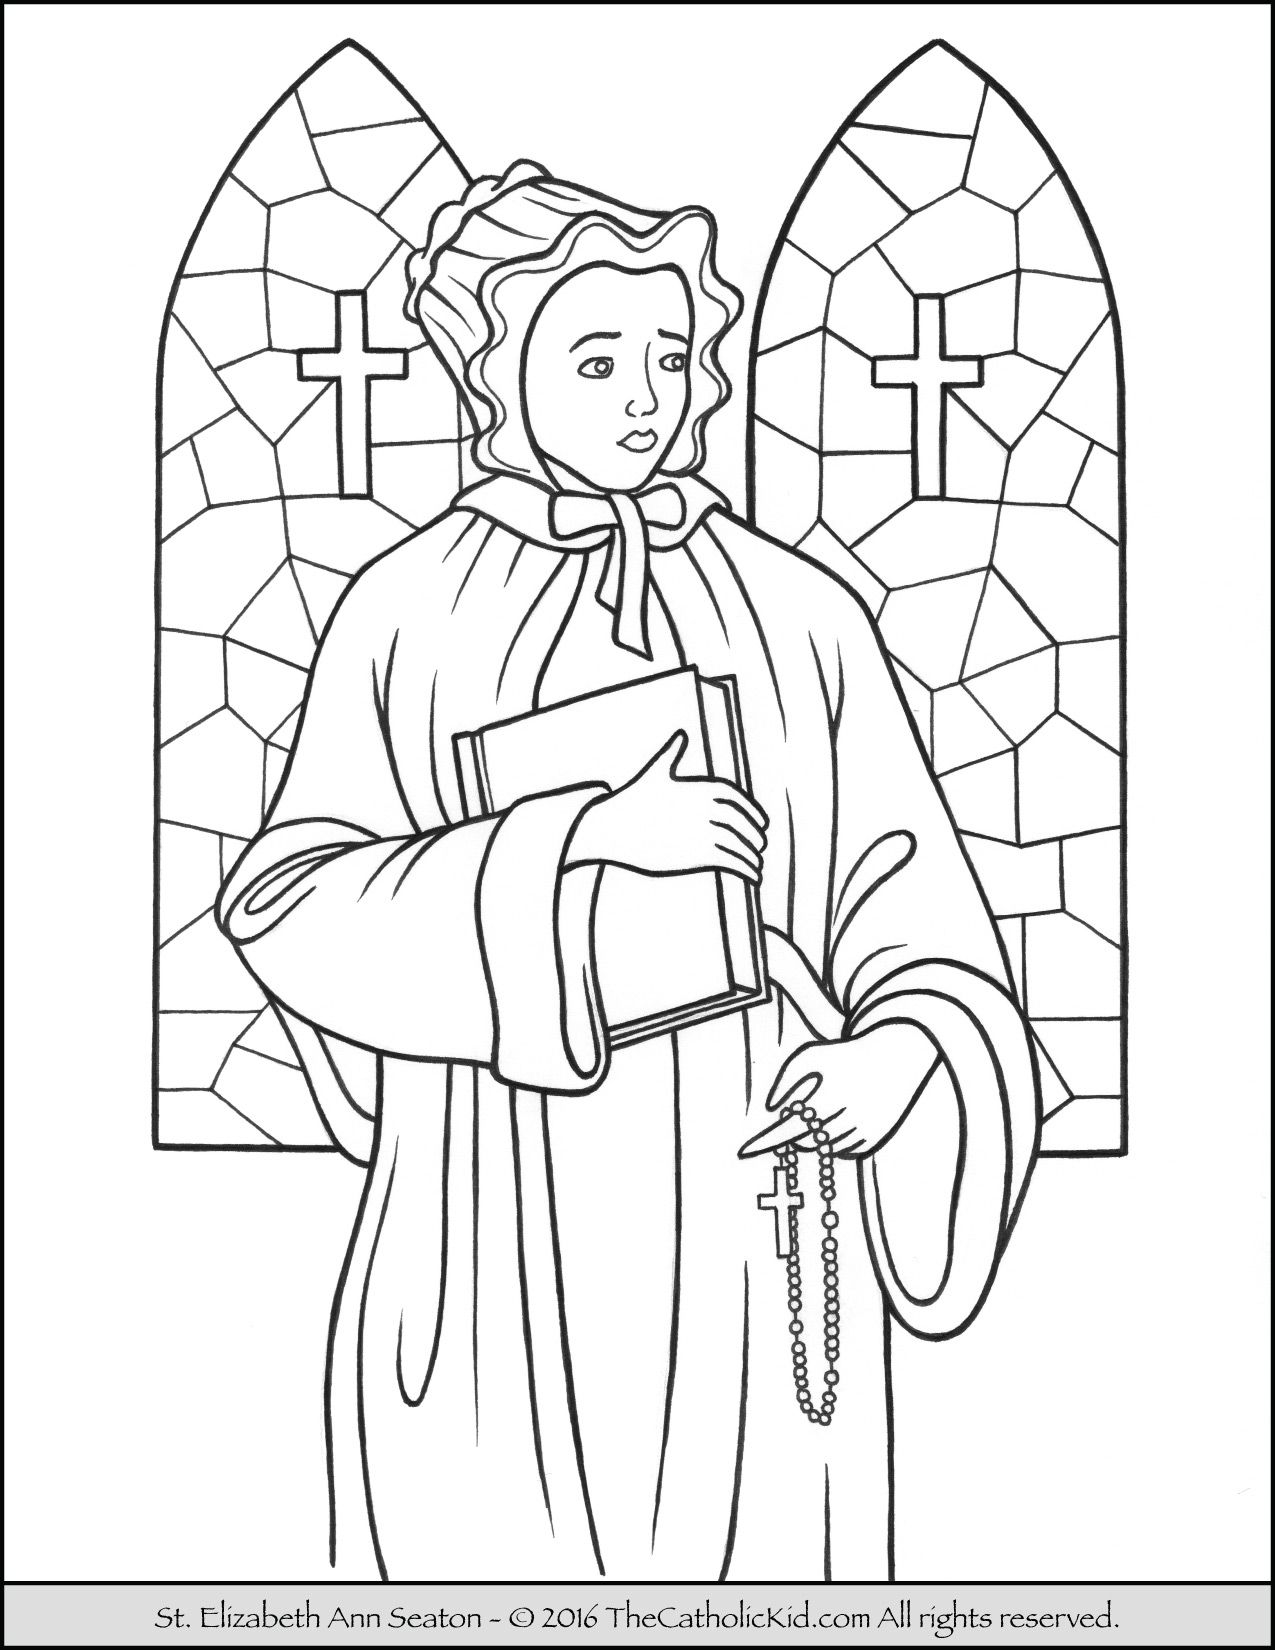 patron saint coloring pages - photo#32